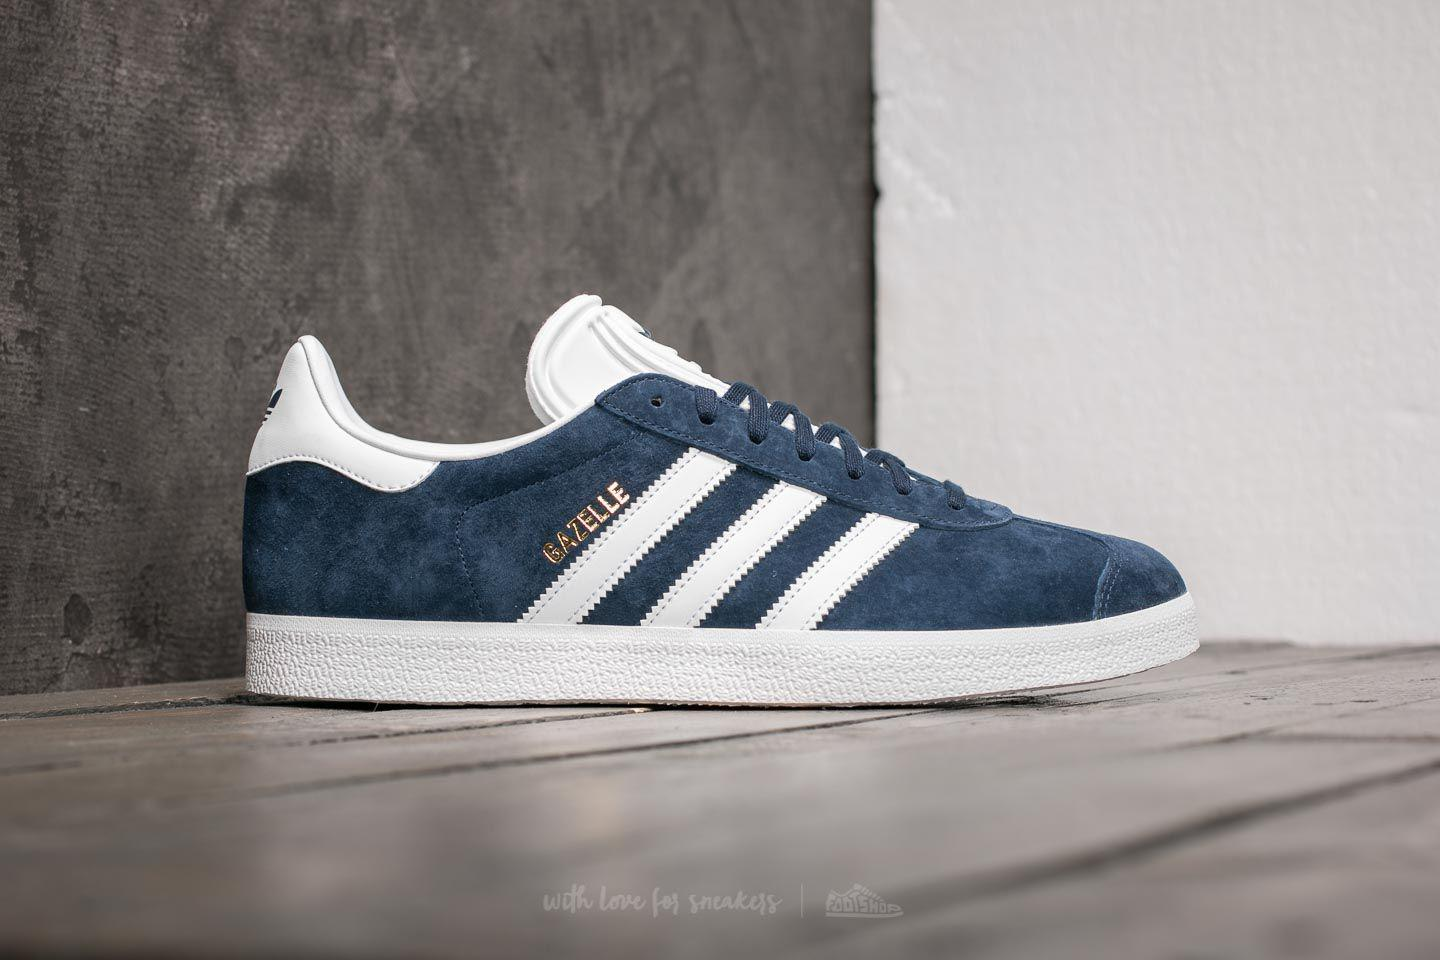 new style 3c26c 23f36 Lyst - adidas Originals Adidas Gazelle Core Navy White Gold